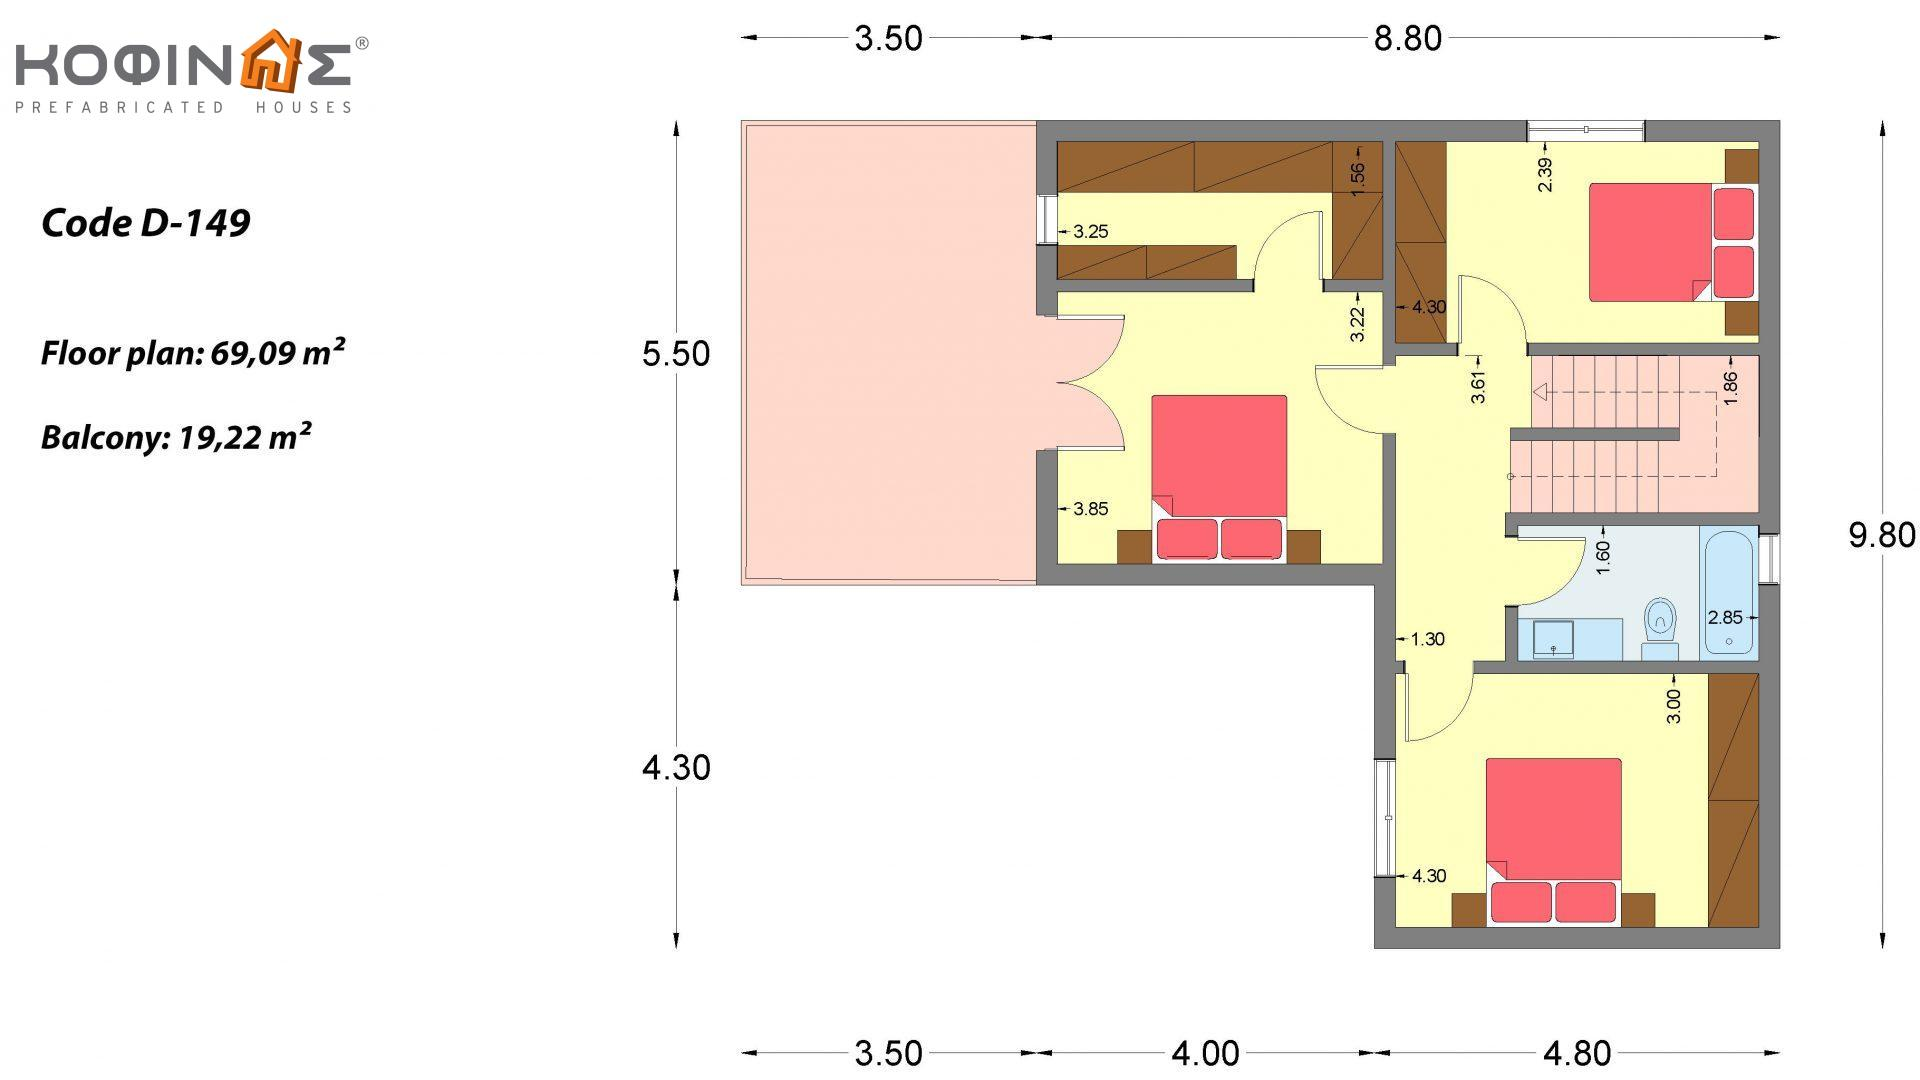 2-story house D-149, total surface of 149,13 m²,roofed areas 36.47 m²,balconies 19.22 m²